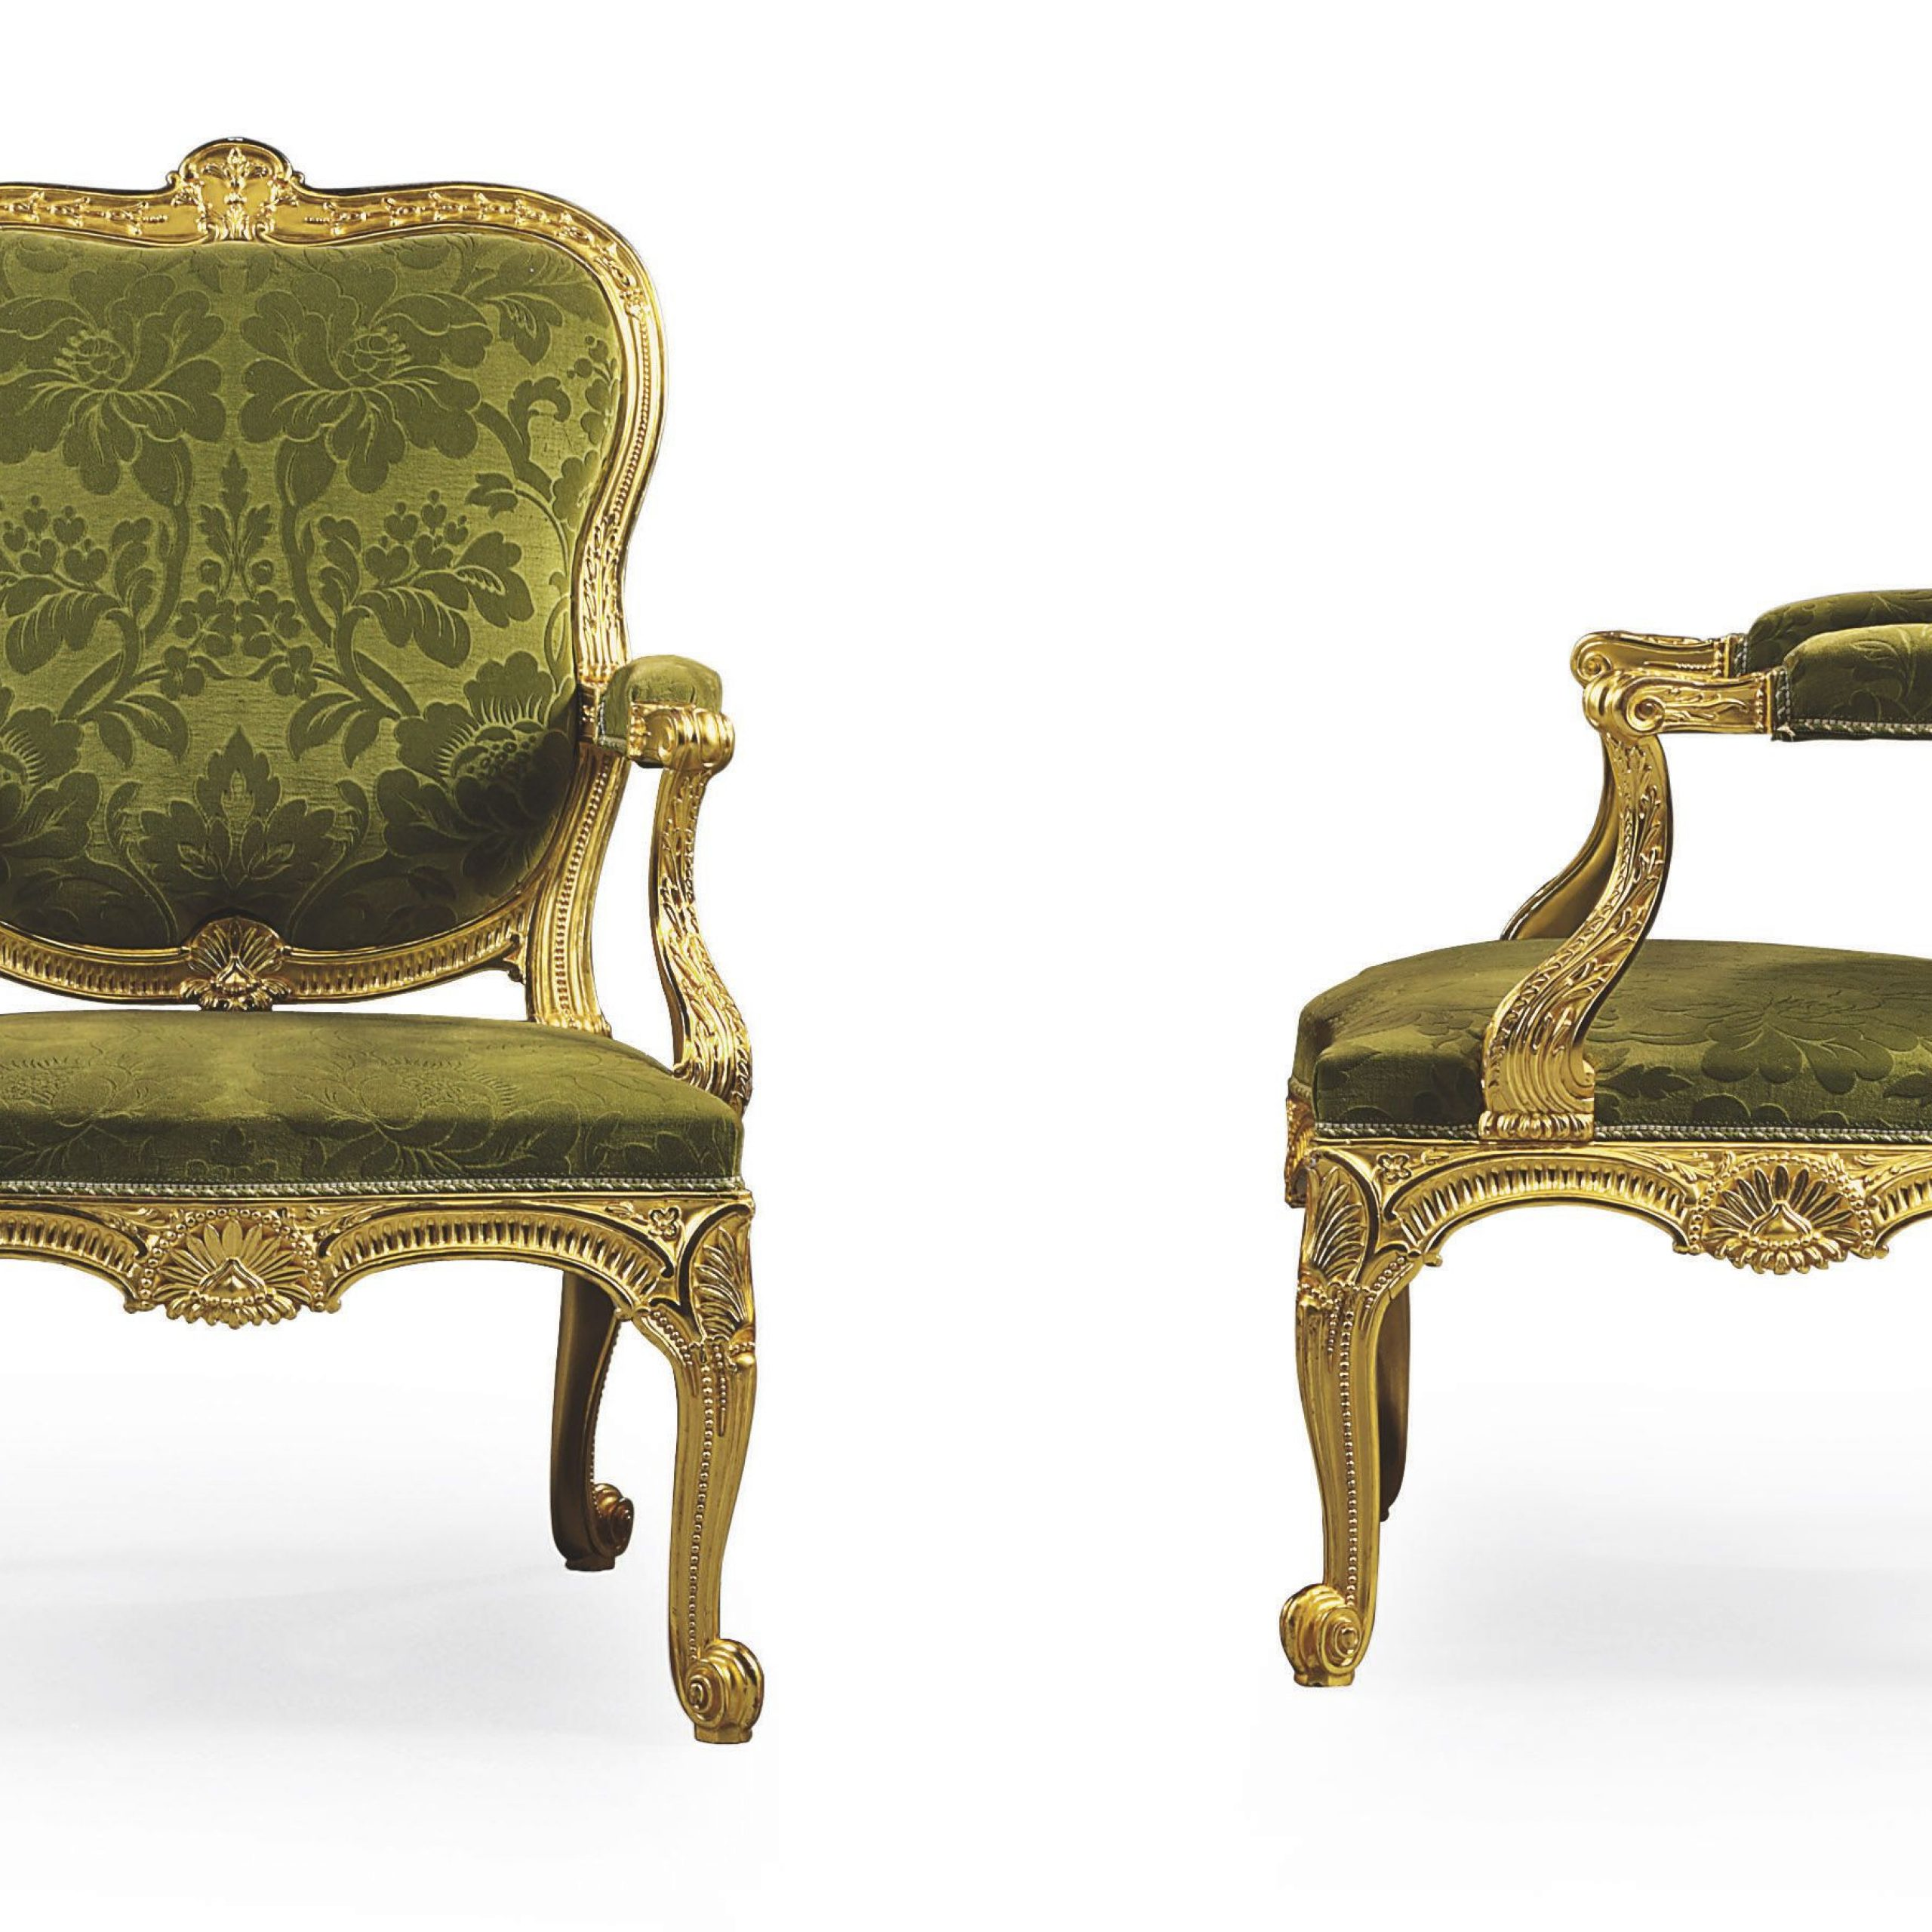 James Armchairs Regarding Most Current C1758 65 A Pair Of George Ii Giltwood Open Armchairs Almost (View 11 of 20)